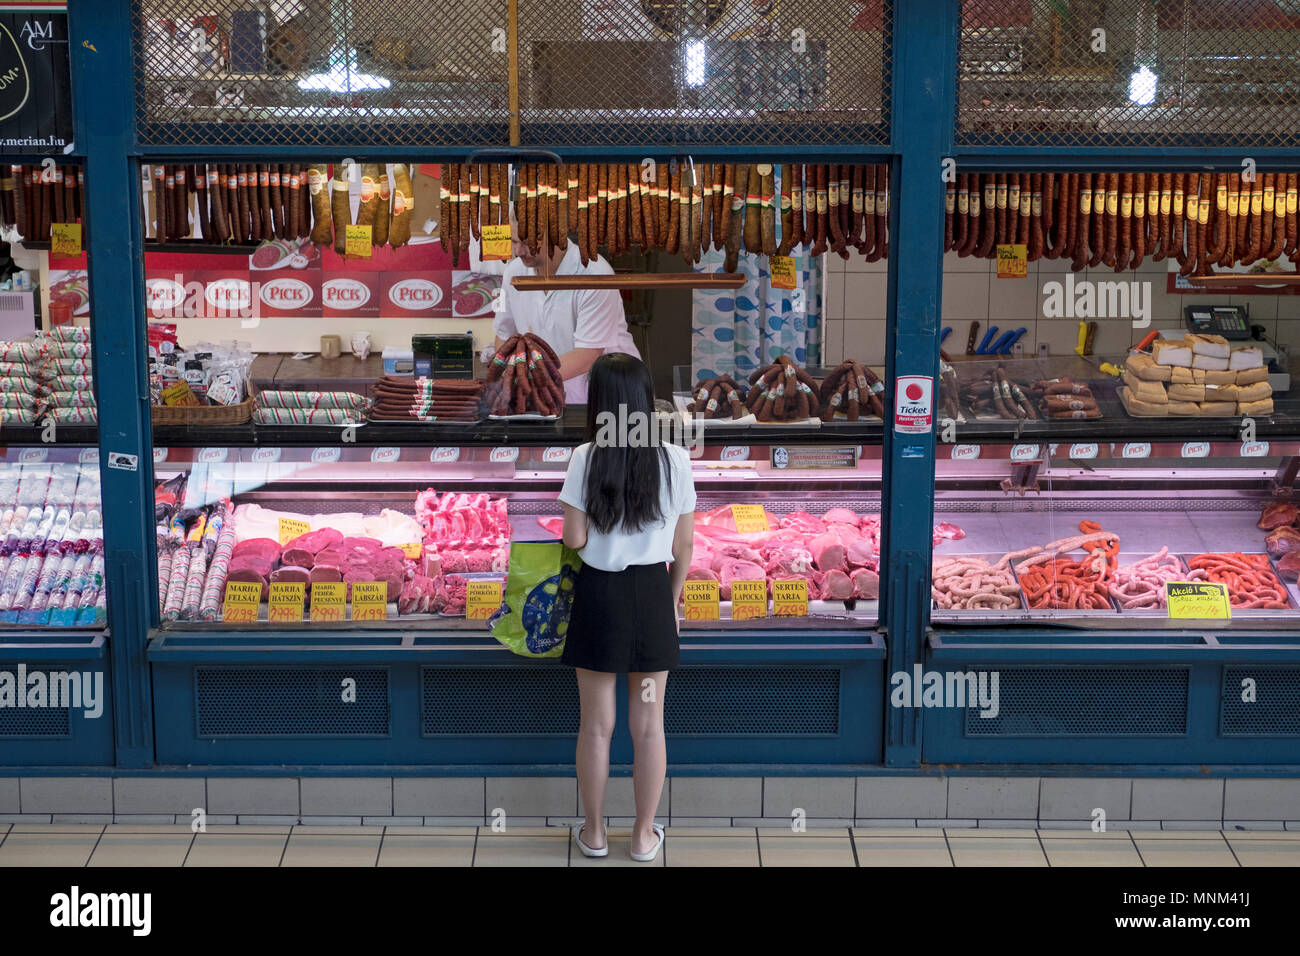 Colorful tourist items for sale at the Central Market in the Pest section of Budapest, Hungary. Stock Photo